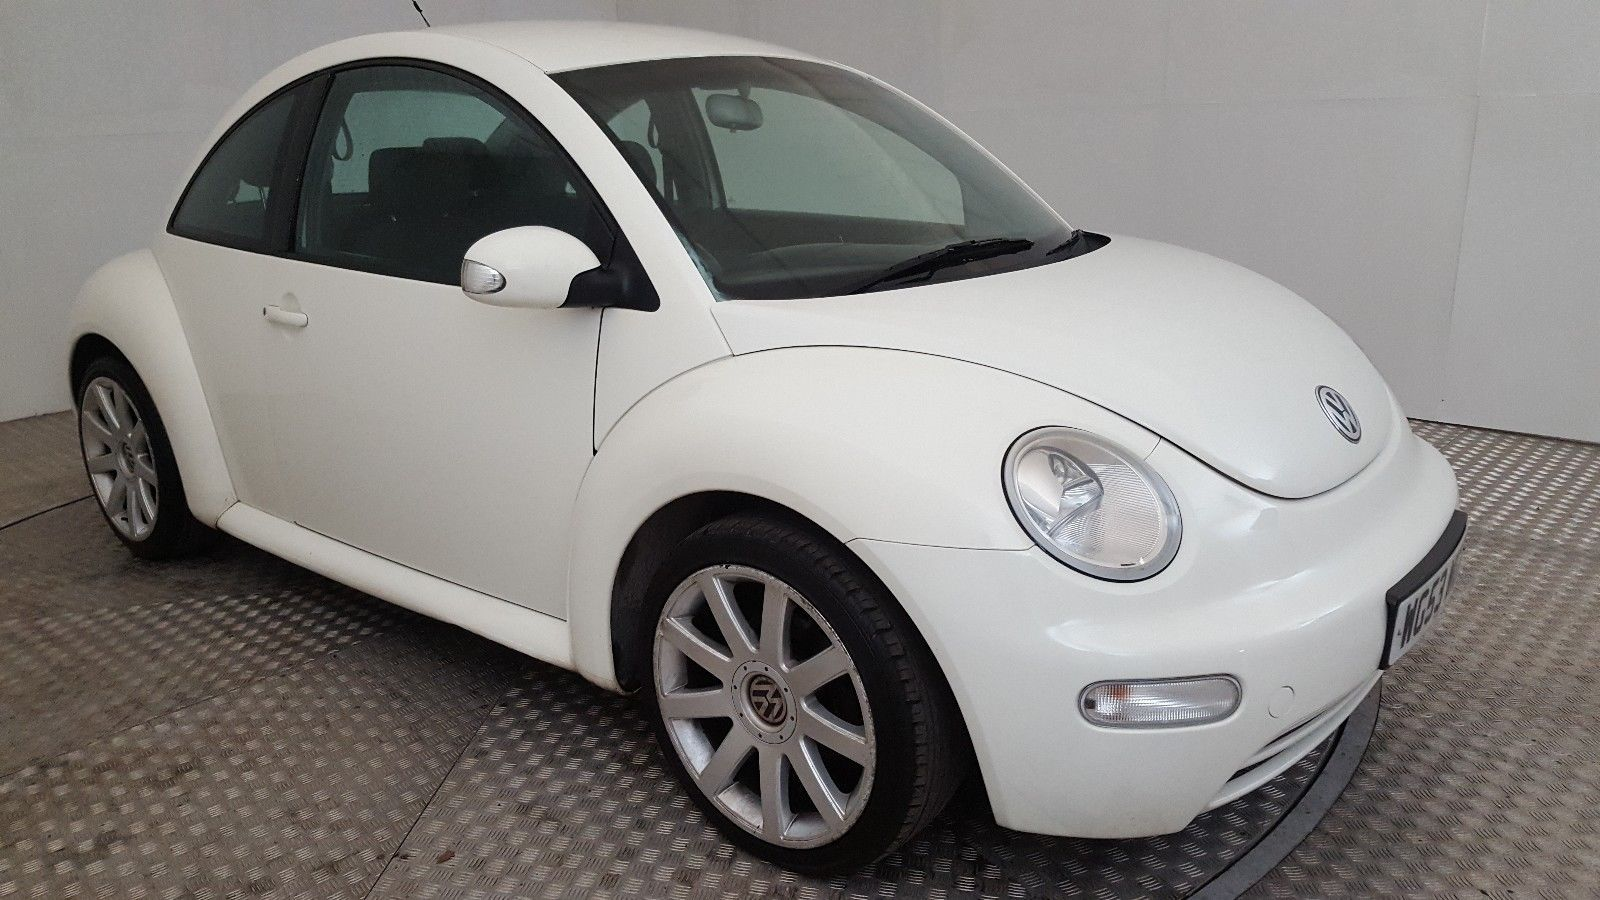 eBay: 2004 VOLKSWAGEN BEETLE TDI WHITE 1.9 DIESEL 5 SPEED MANUAL HATCHBACK # vwbeetle #vwbug #vw